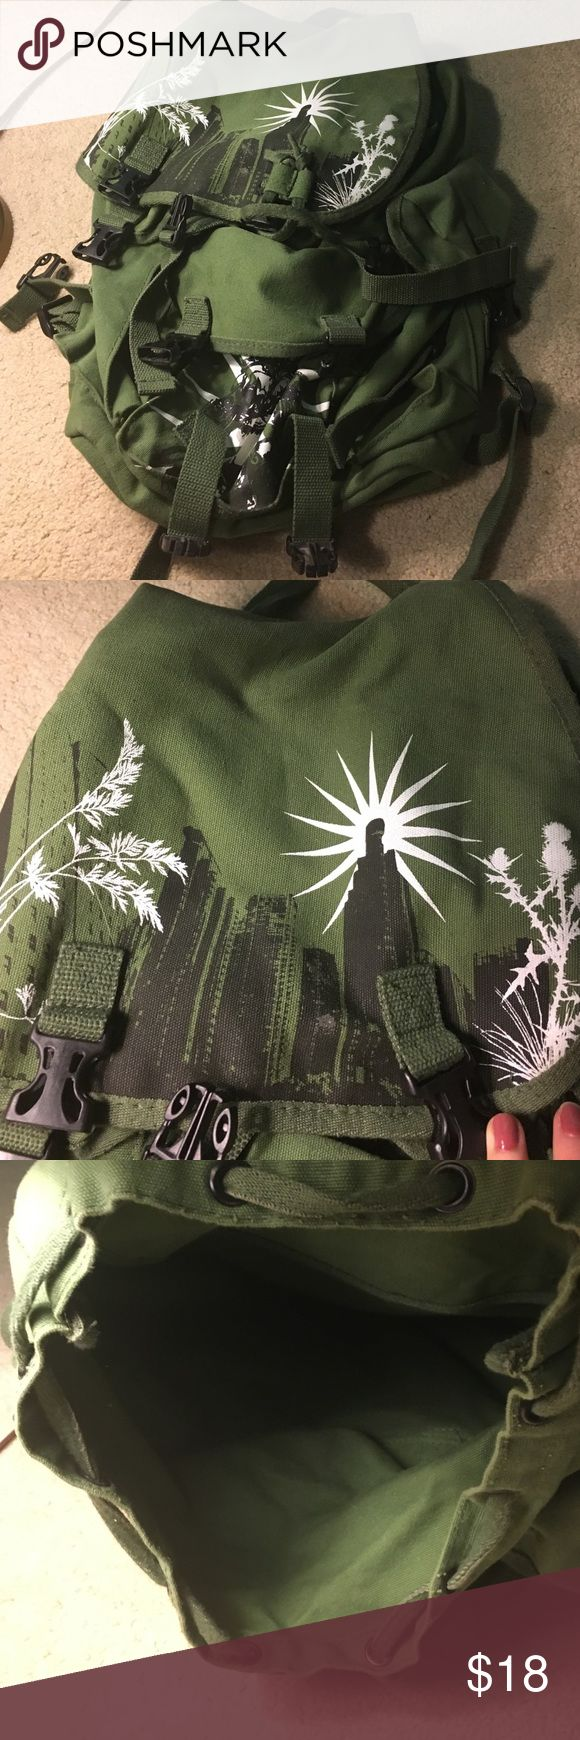 Army Green Backpack Great condition army green backpack with city designs! I think I used this maybe once or twice. Have too many backpacks! Send me an offer!! :) A little fading on the back! Bags Backpacks